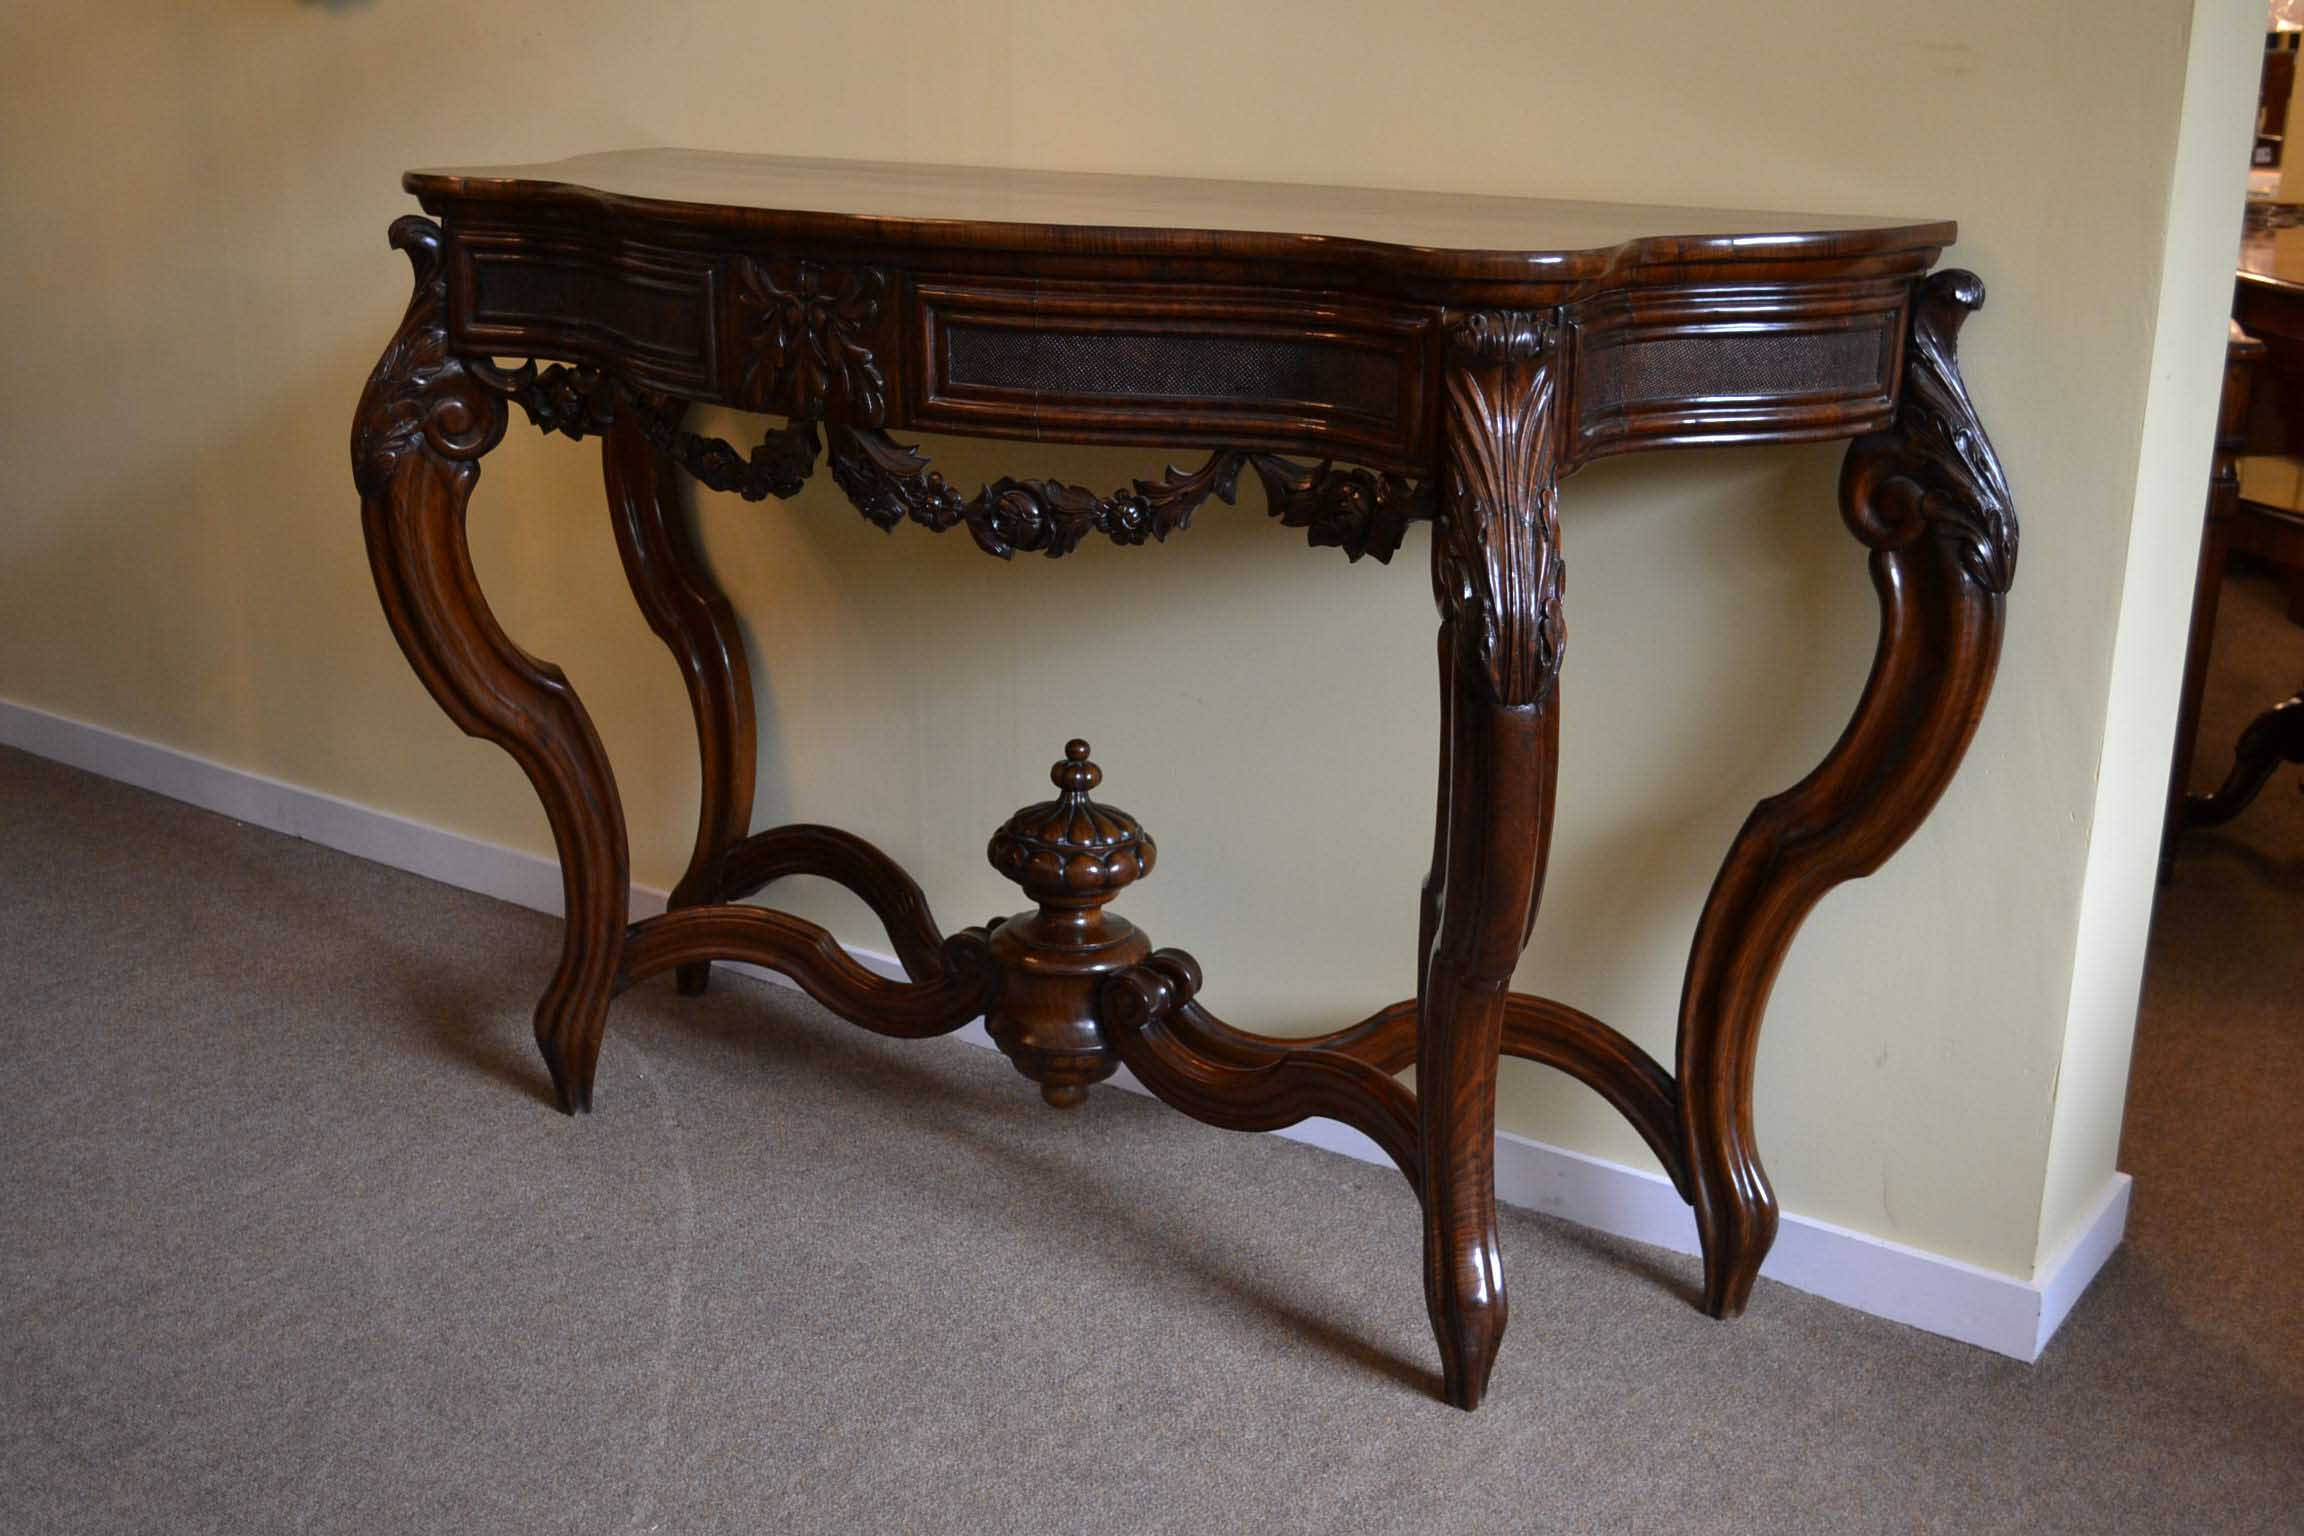 Excellent 03774-Antique-French-Walnut-Console-Table-C1840-10 2304 x 1536 · 209 kB · jpeg